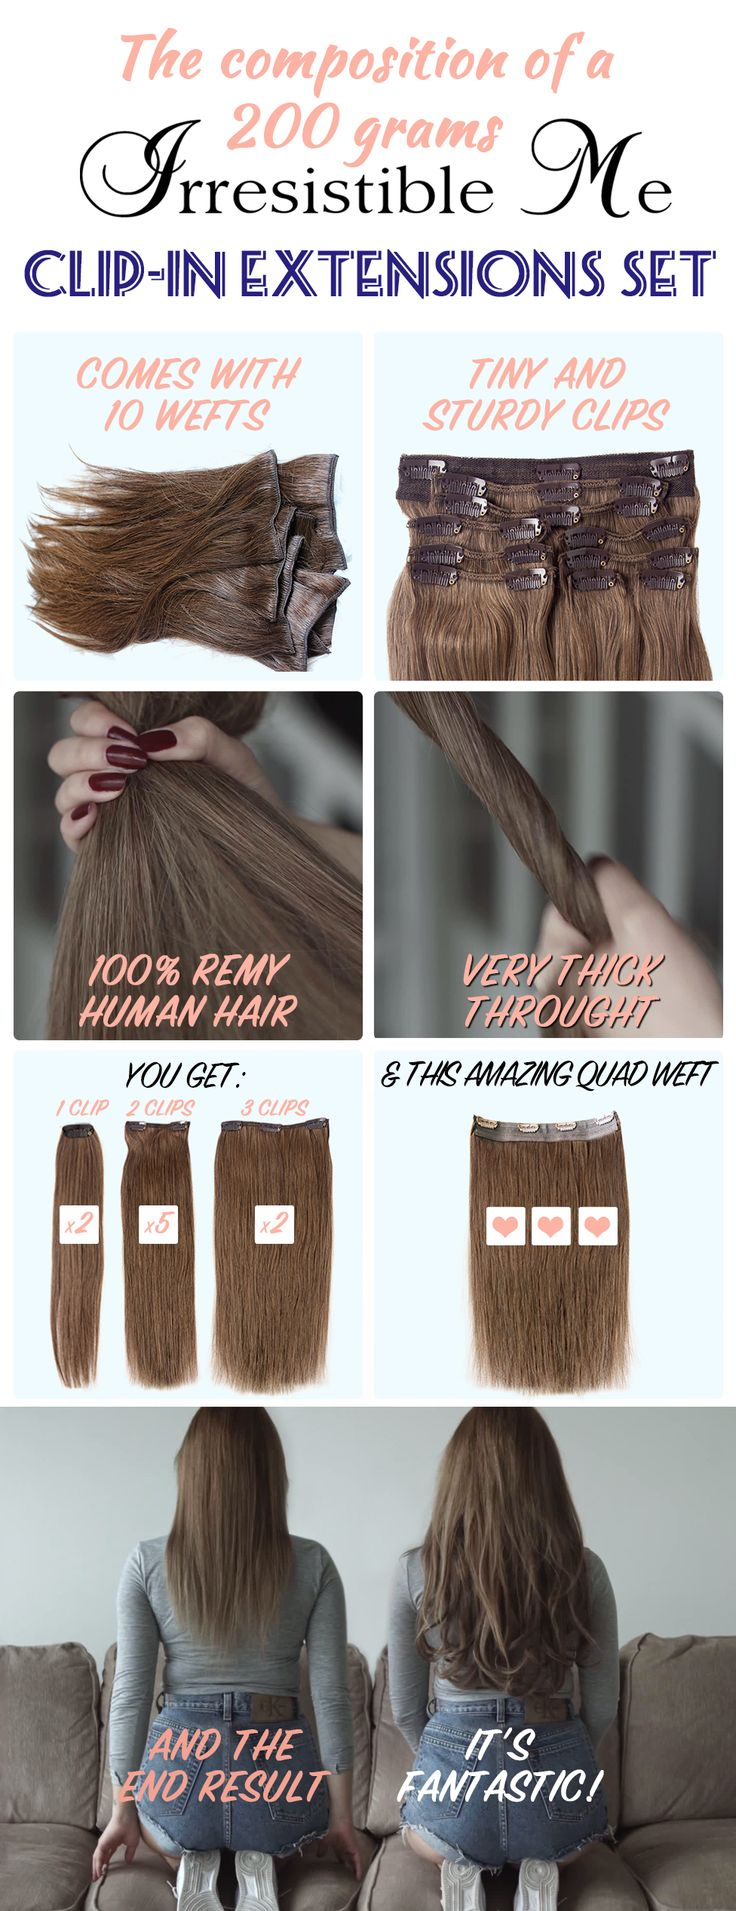 Best 25 hair extensions prices ideas on pinterest price add instant length and volume to your hair with these 100 human remy clip in hair extensions by irresistible me they look completely natural can be cut pmusecretfo Images